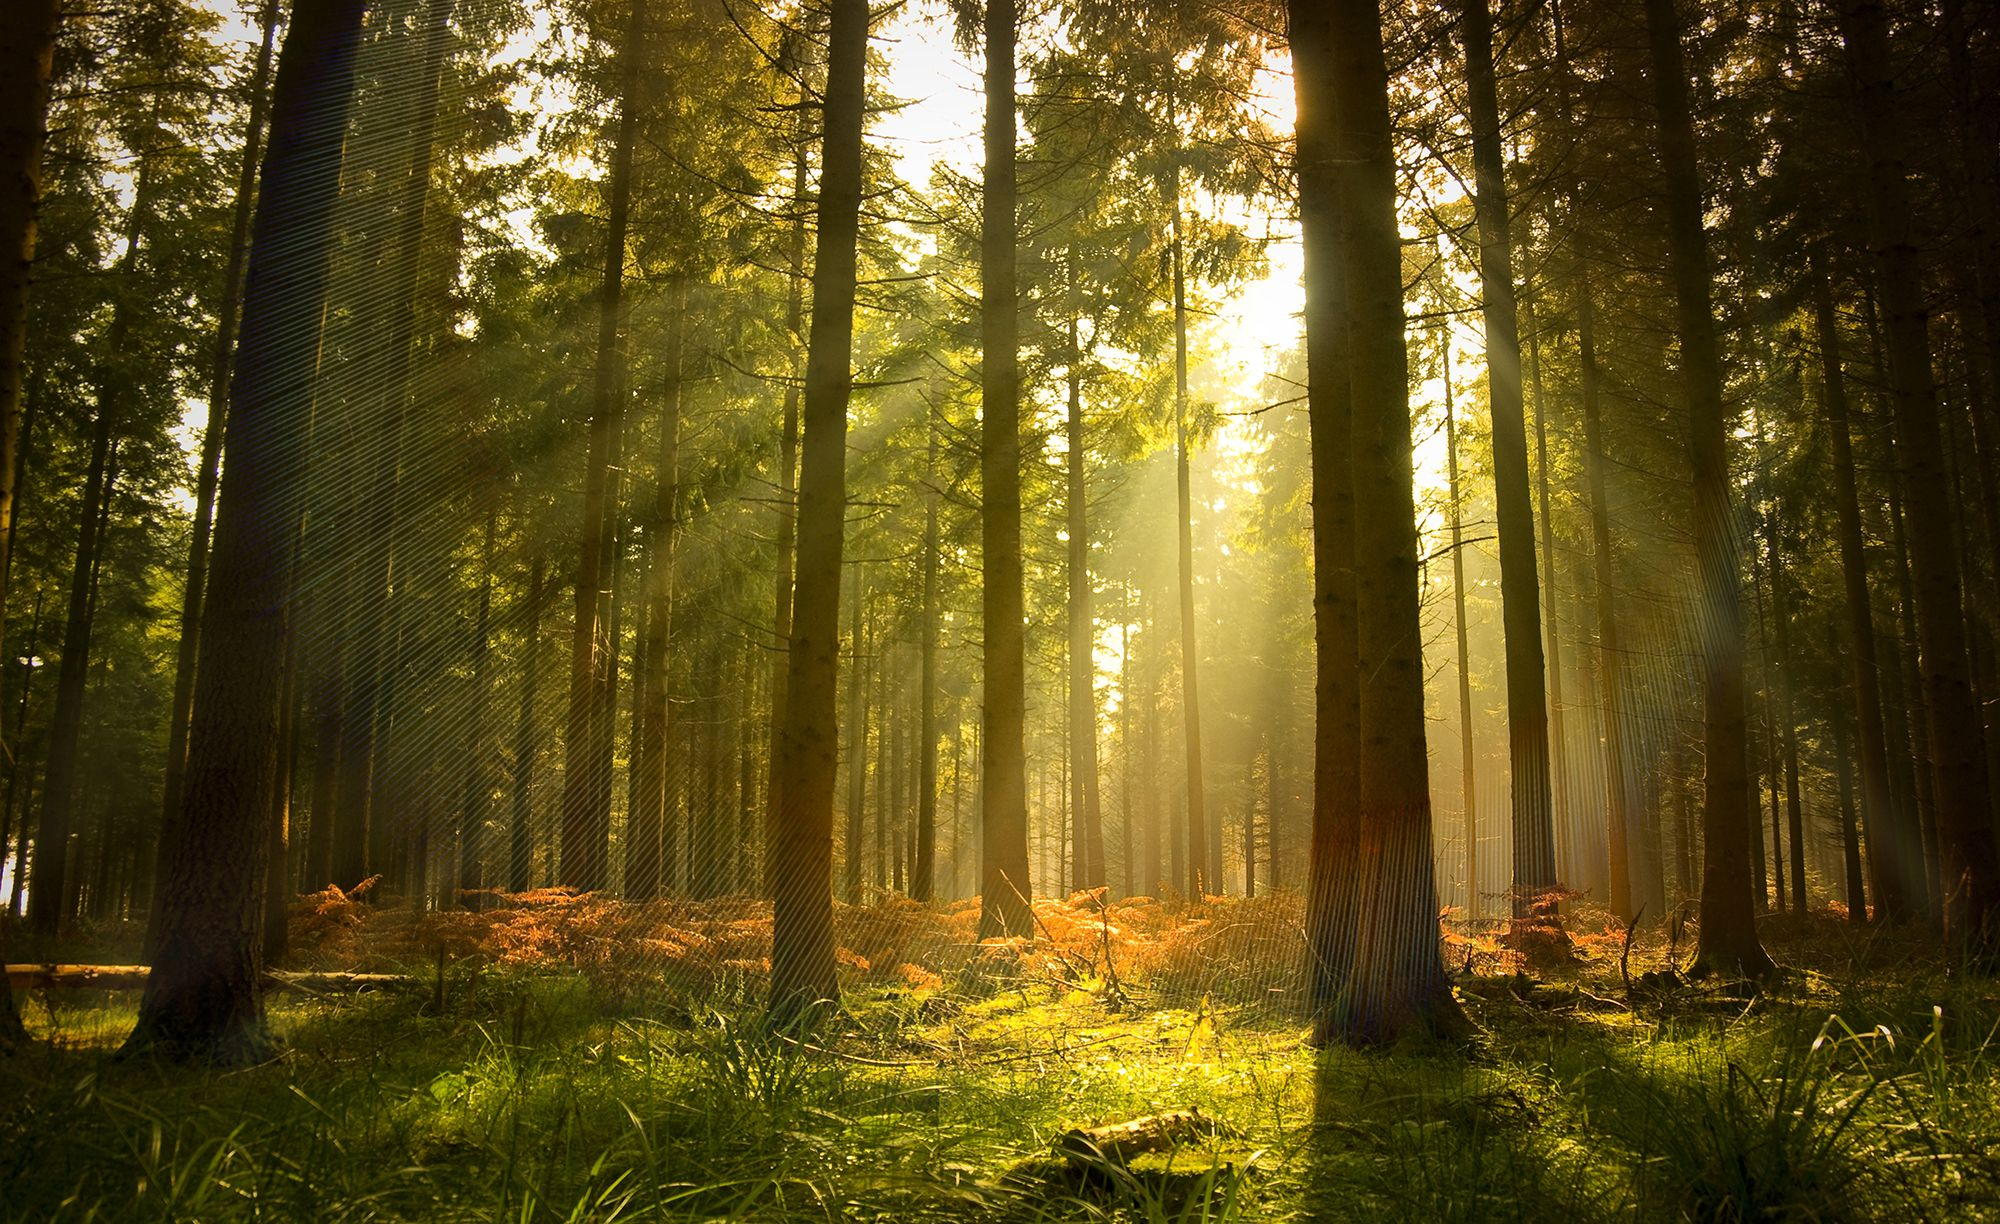 Forest Scene Wallpapers Top Free Forest Scene Backgrounds Wallpaperaccess